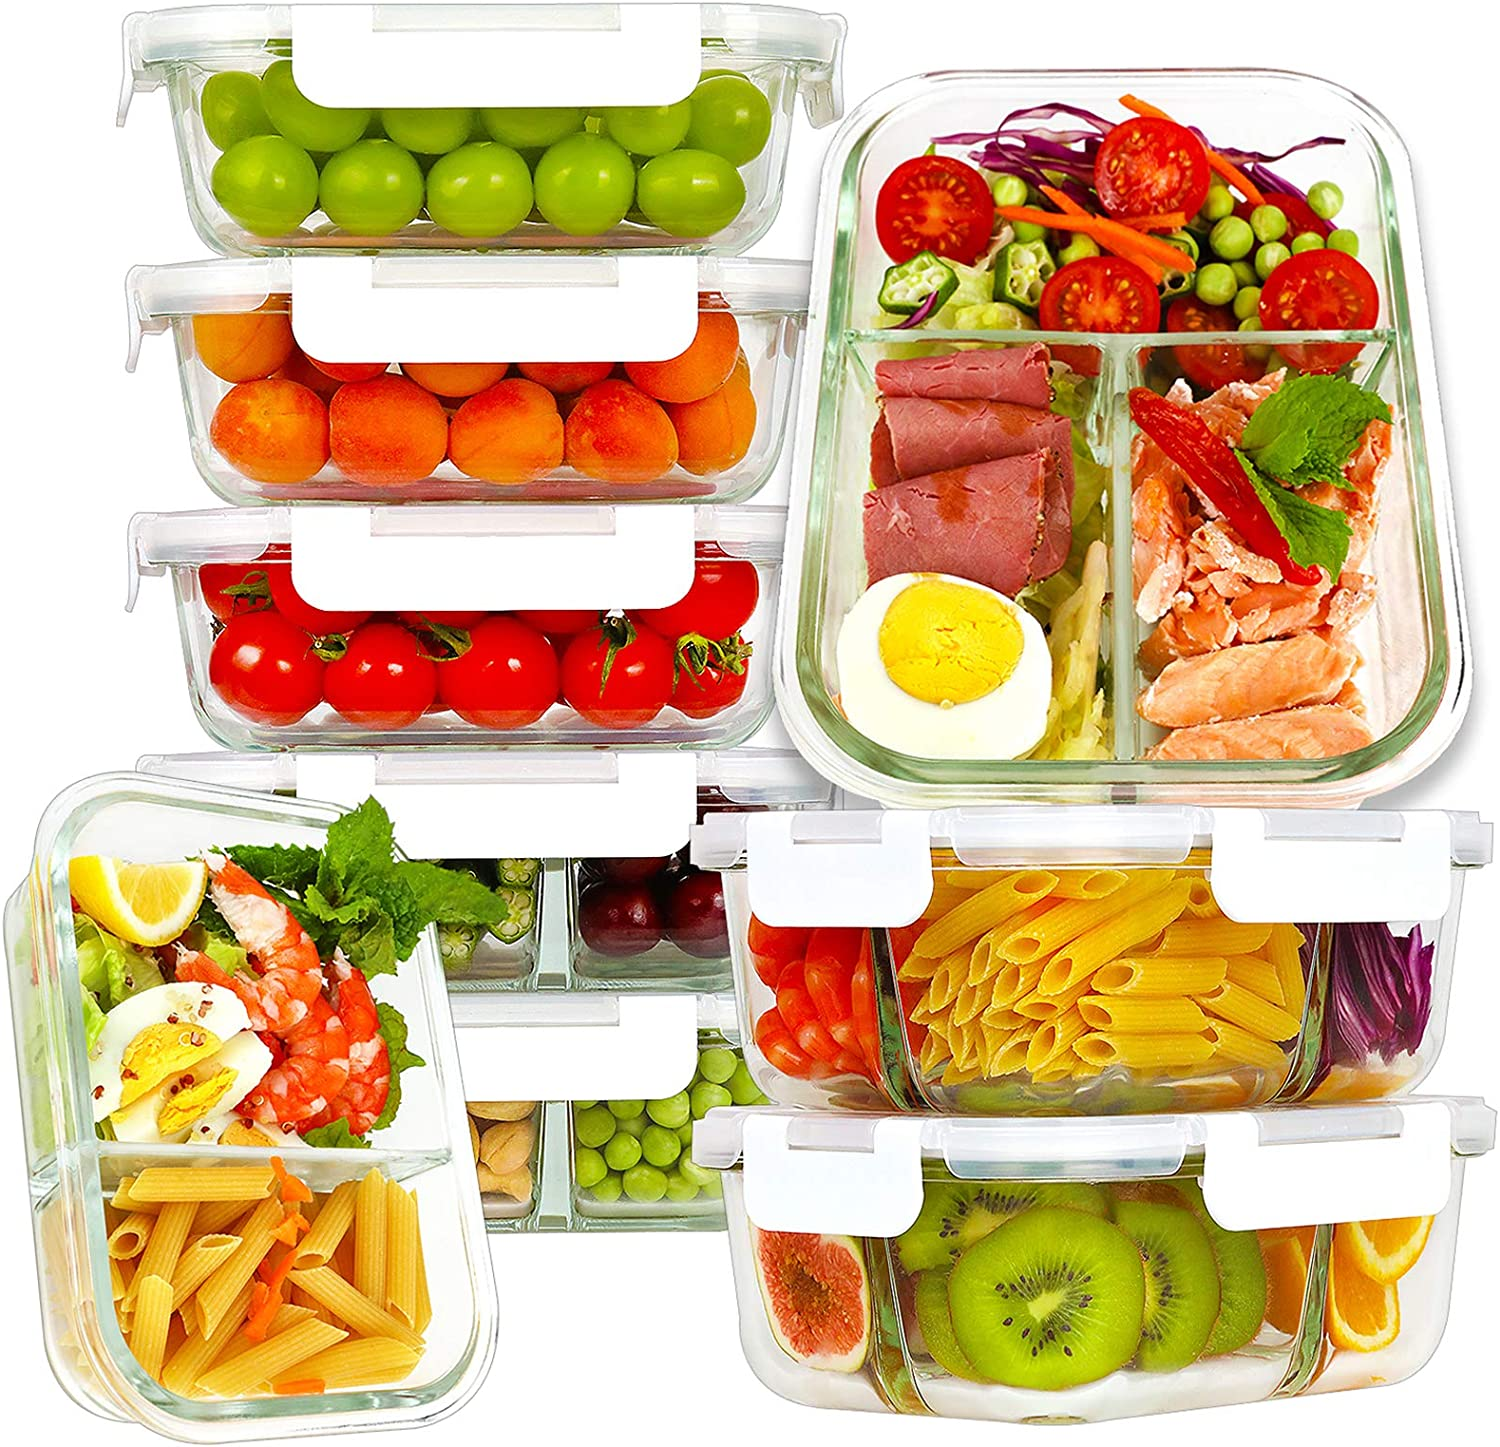 Bayco 9 Pack Glass Meal Prep Containers 3 & 2 & 1 Compartment, Glass Food Storage Containers with Lids, Airtight Glass Lunch Bento Boxes, BPA-Free & Leak Proof (9 lids & 9 Containers) - White